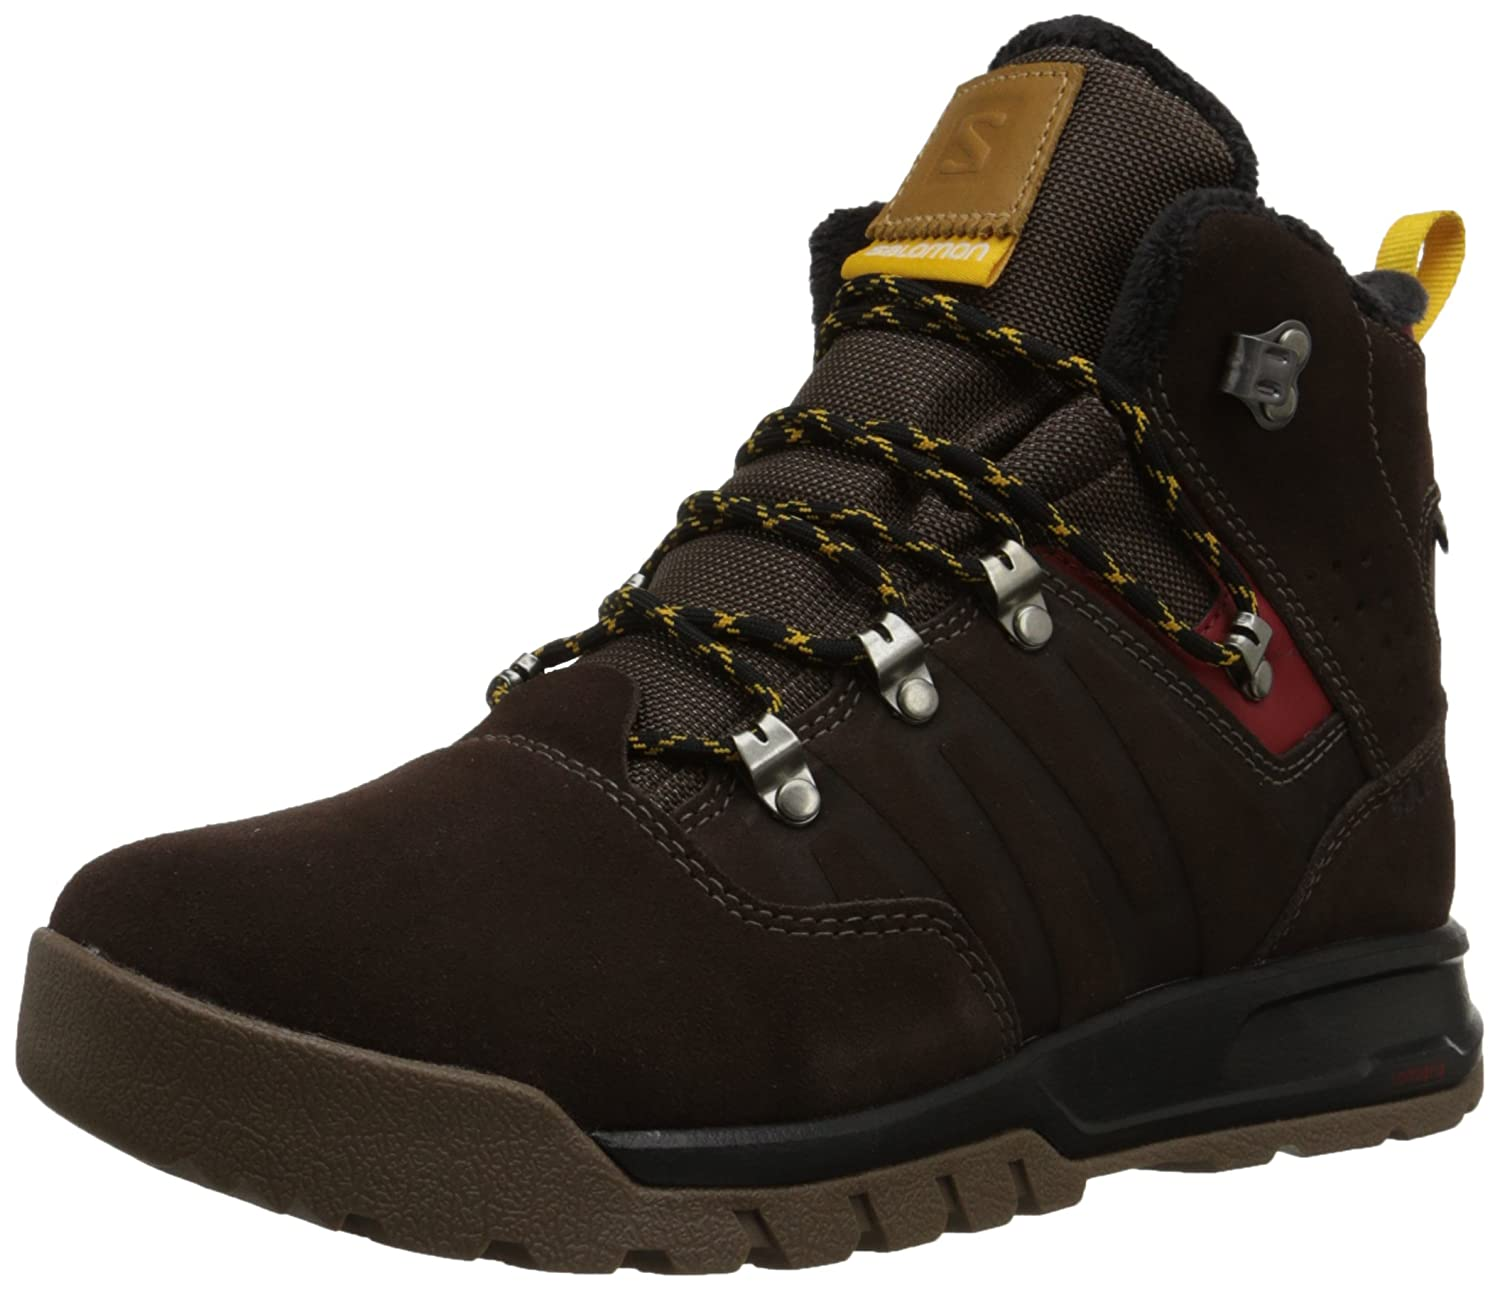 Salomon Men's Utility TS CSWP Winter Wear Hiking Boot Salomon Footwear UTILITY TS CSWP-M